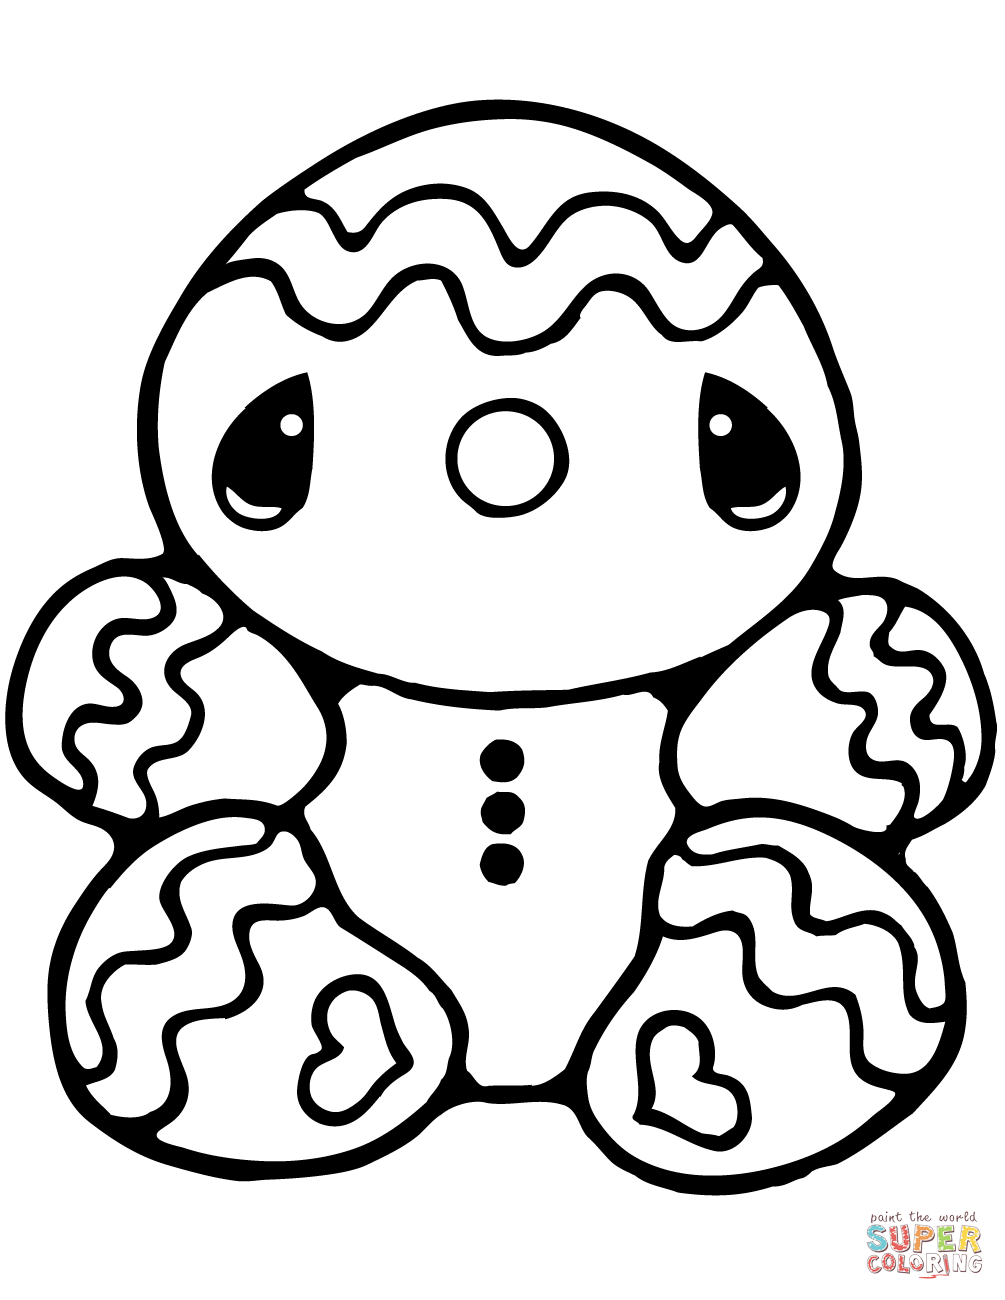 gingerbread man coloring pages printable free printable gingerbread man coloring pages for kids gingerbread man coloring pages printable